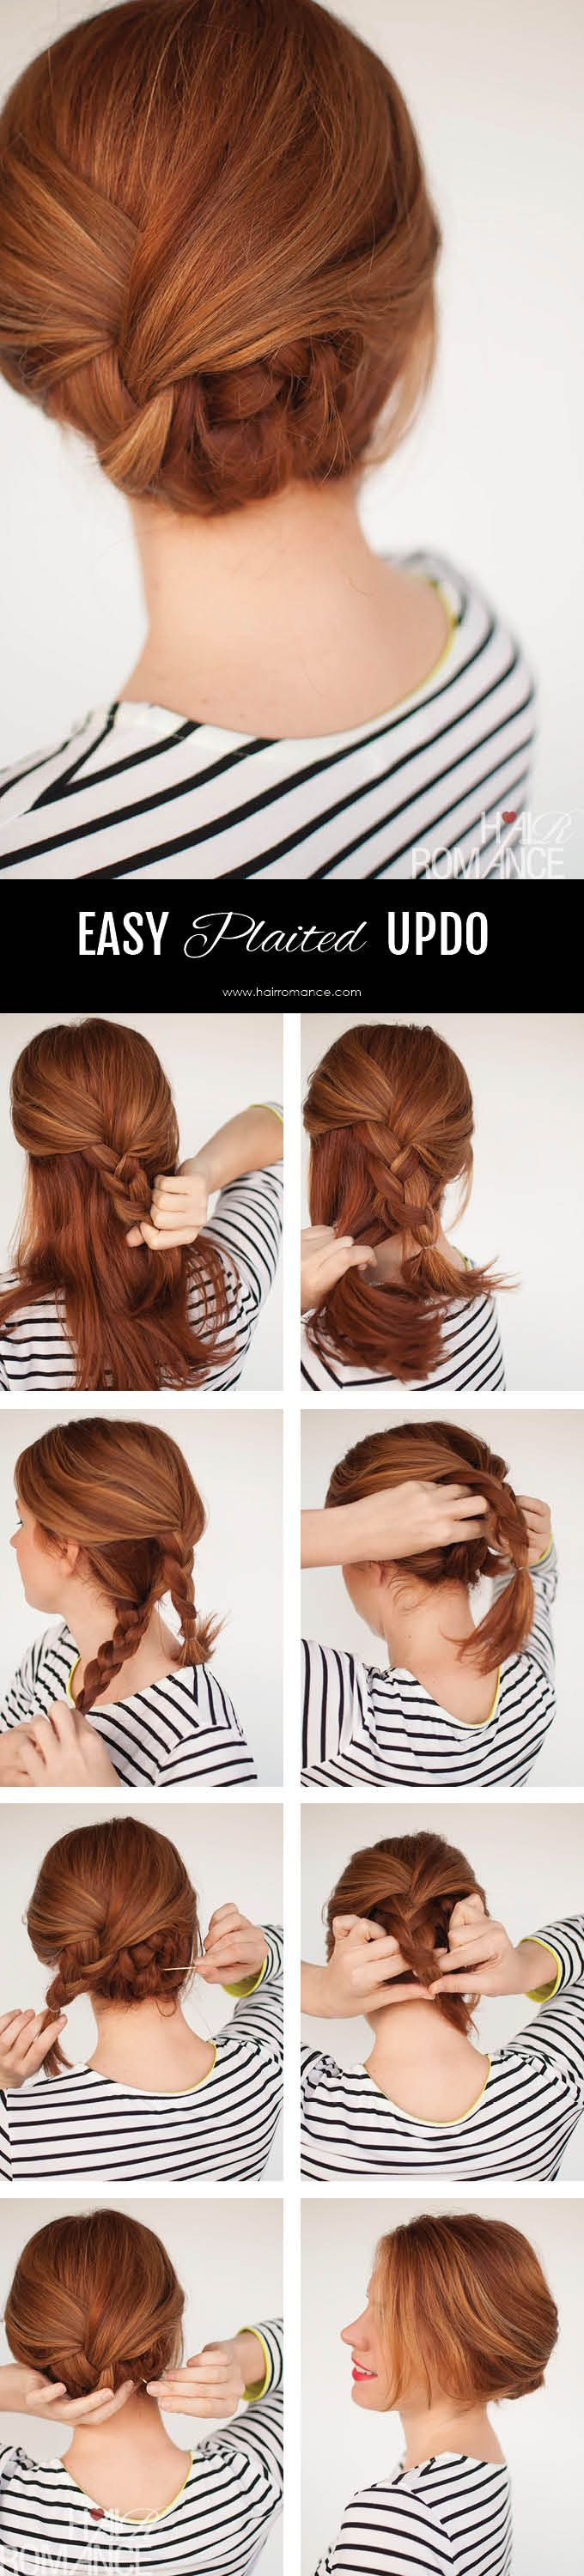 60 Simple Five Minute Hairstyles for fice Women plete